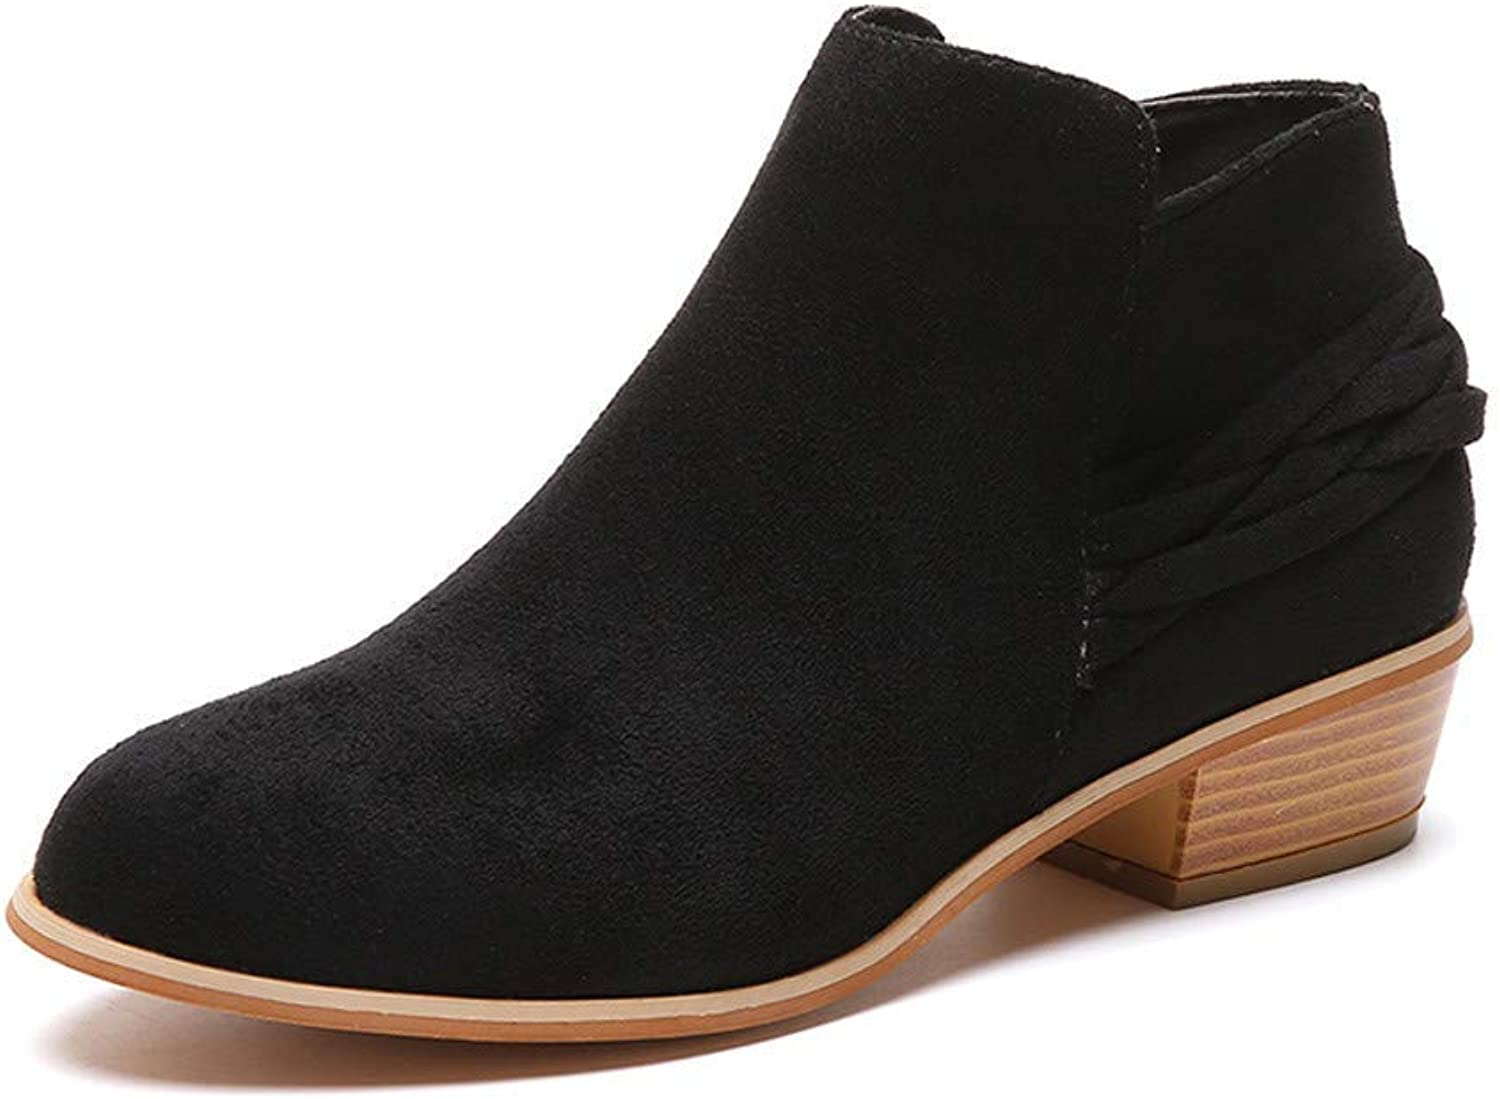 Suede Ankle Bootie Women Square Heel Knitted Zipper Round Toe Flock Solid shoes